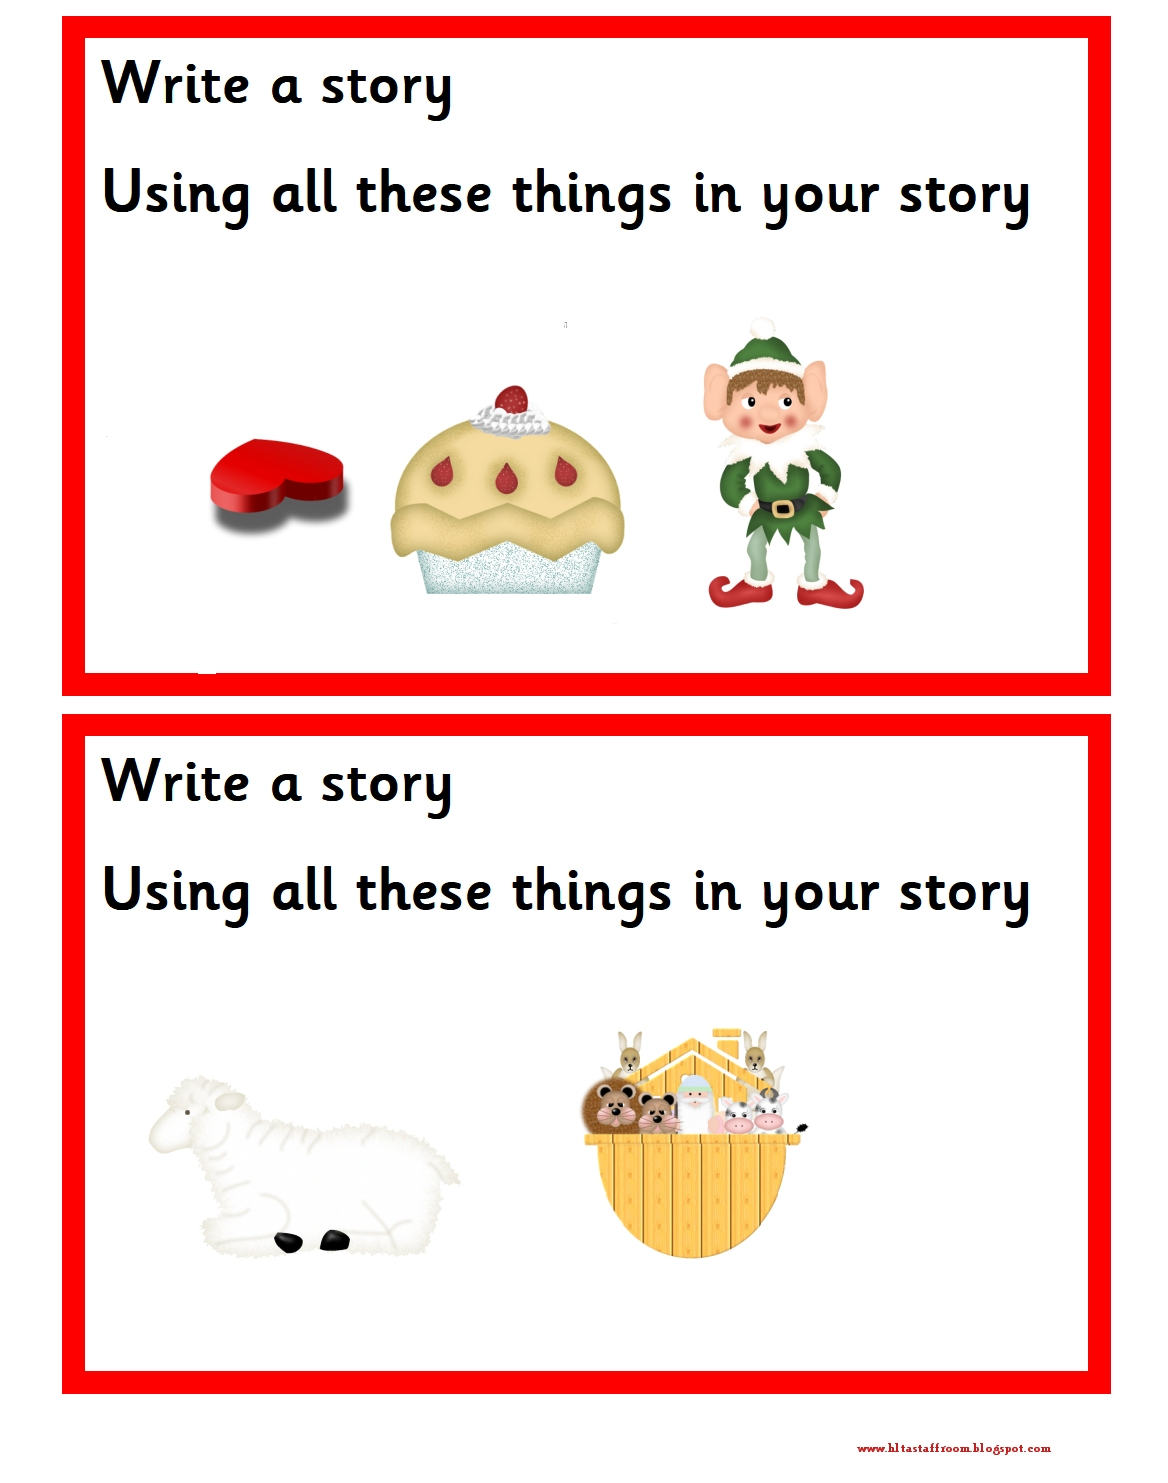 creative writing story There's no shortcut to writing a great story however, there are guidelines that  can help get you started if you've never done it before this chart.